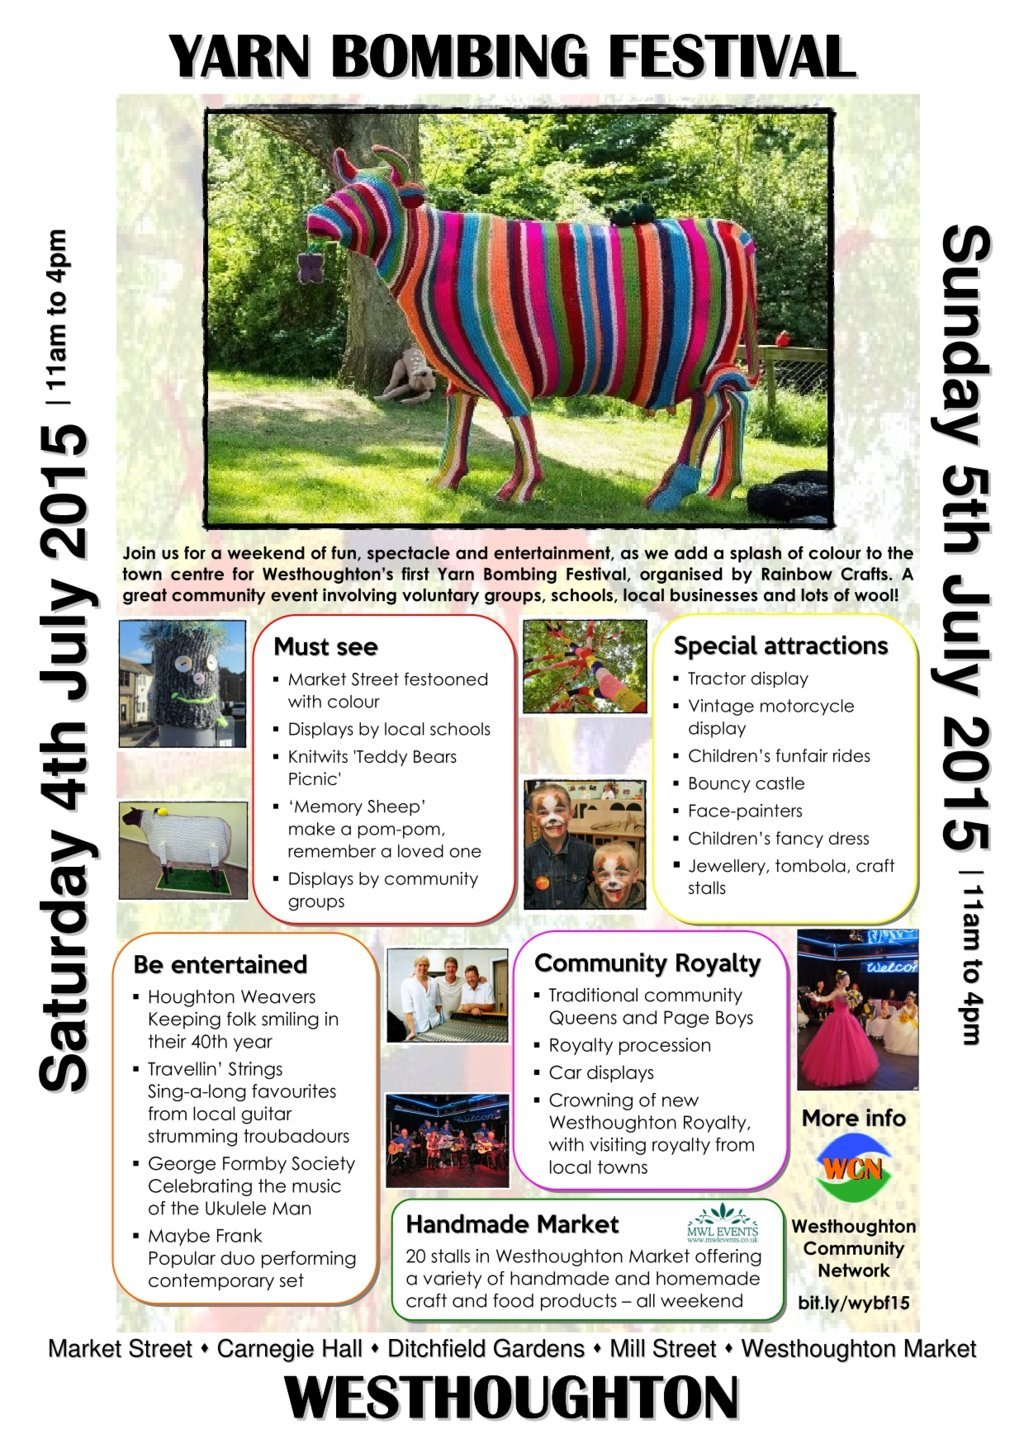 Westhoughton Yarn Bombing Festival 2015 - 4th/5th July